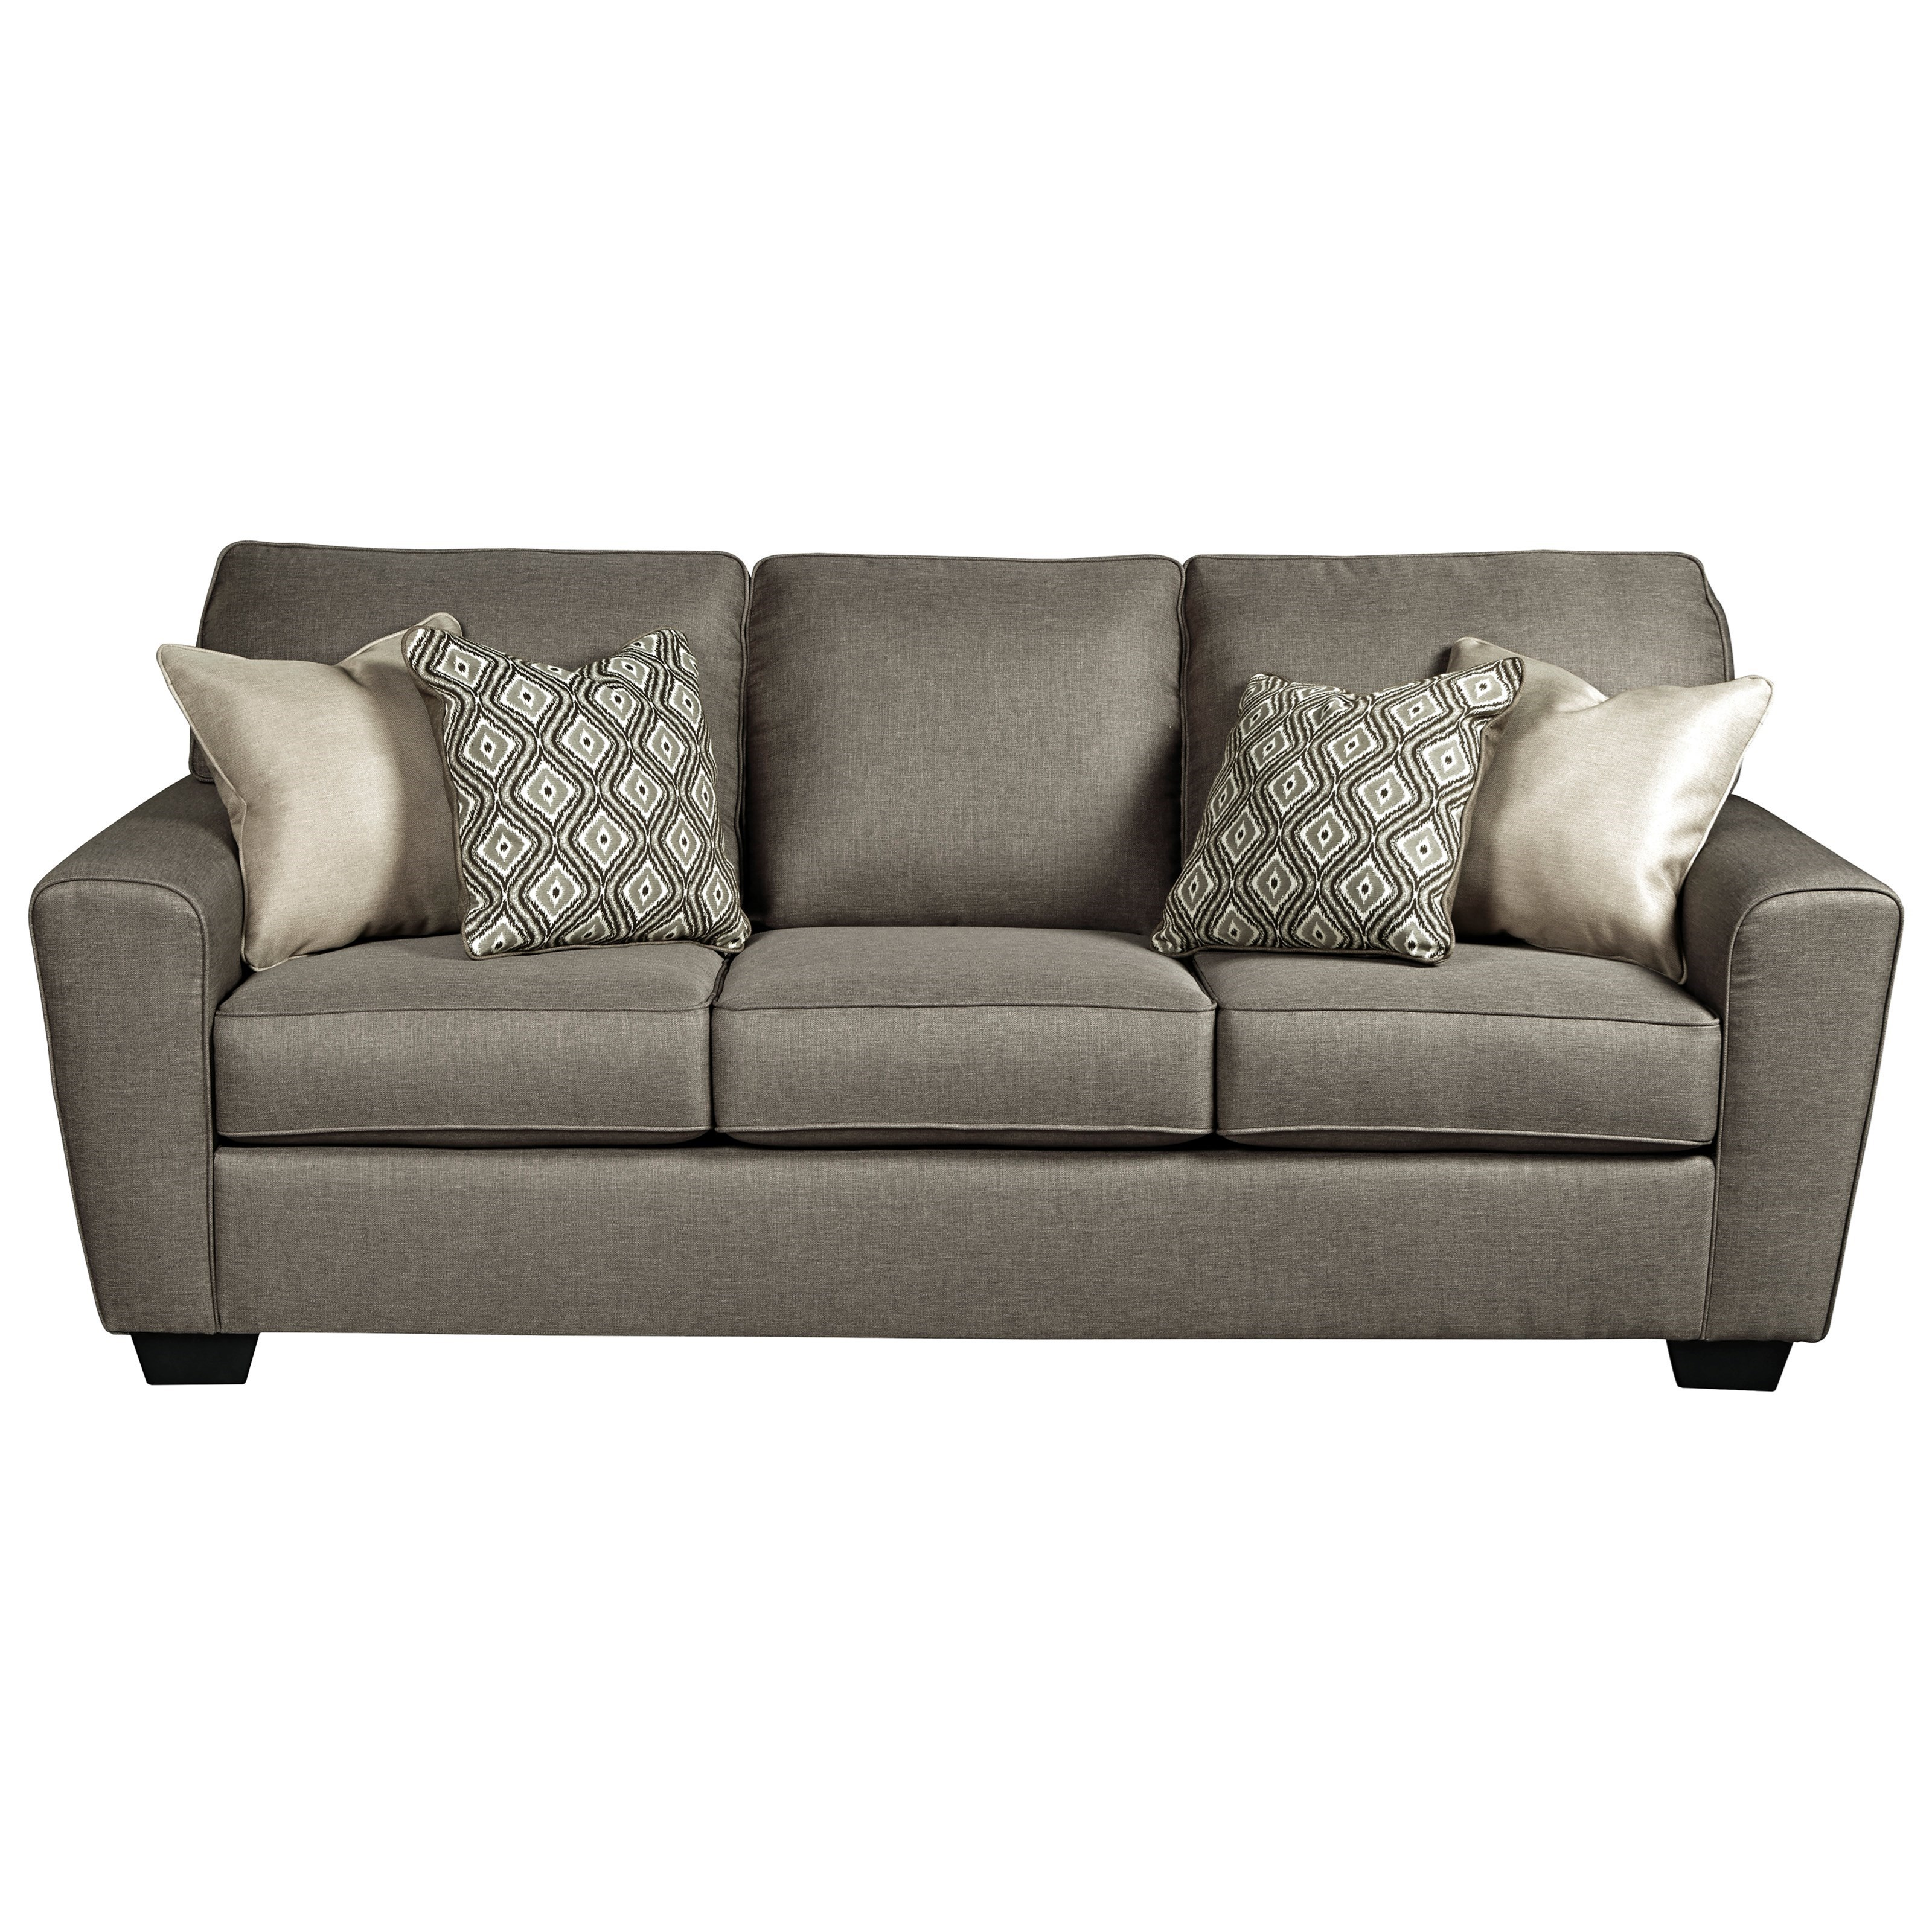 Calicho Queen Sofa Sleeper by Benchcraft at Miller Waldrop Furniture and Decor